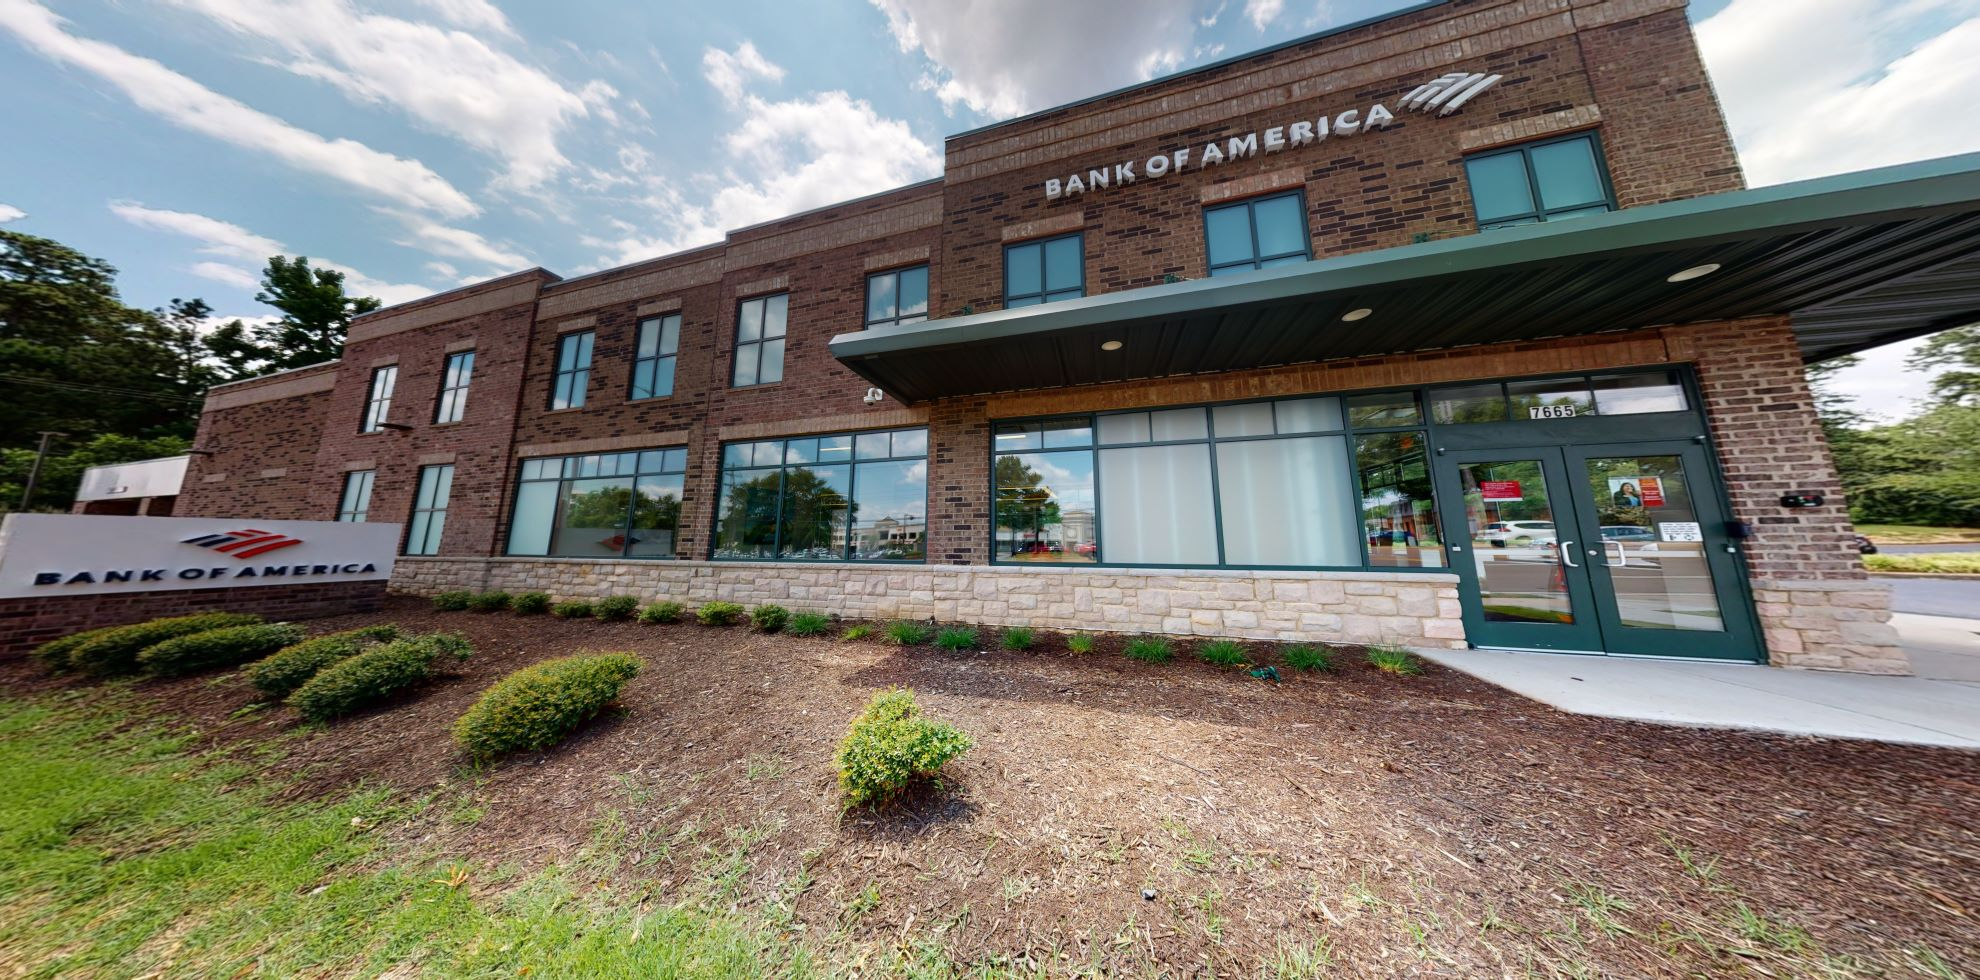 Bank of America financial center with drive-thru ATM   7665 Poplar Ave, Germantown, TN 38138